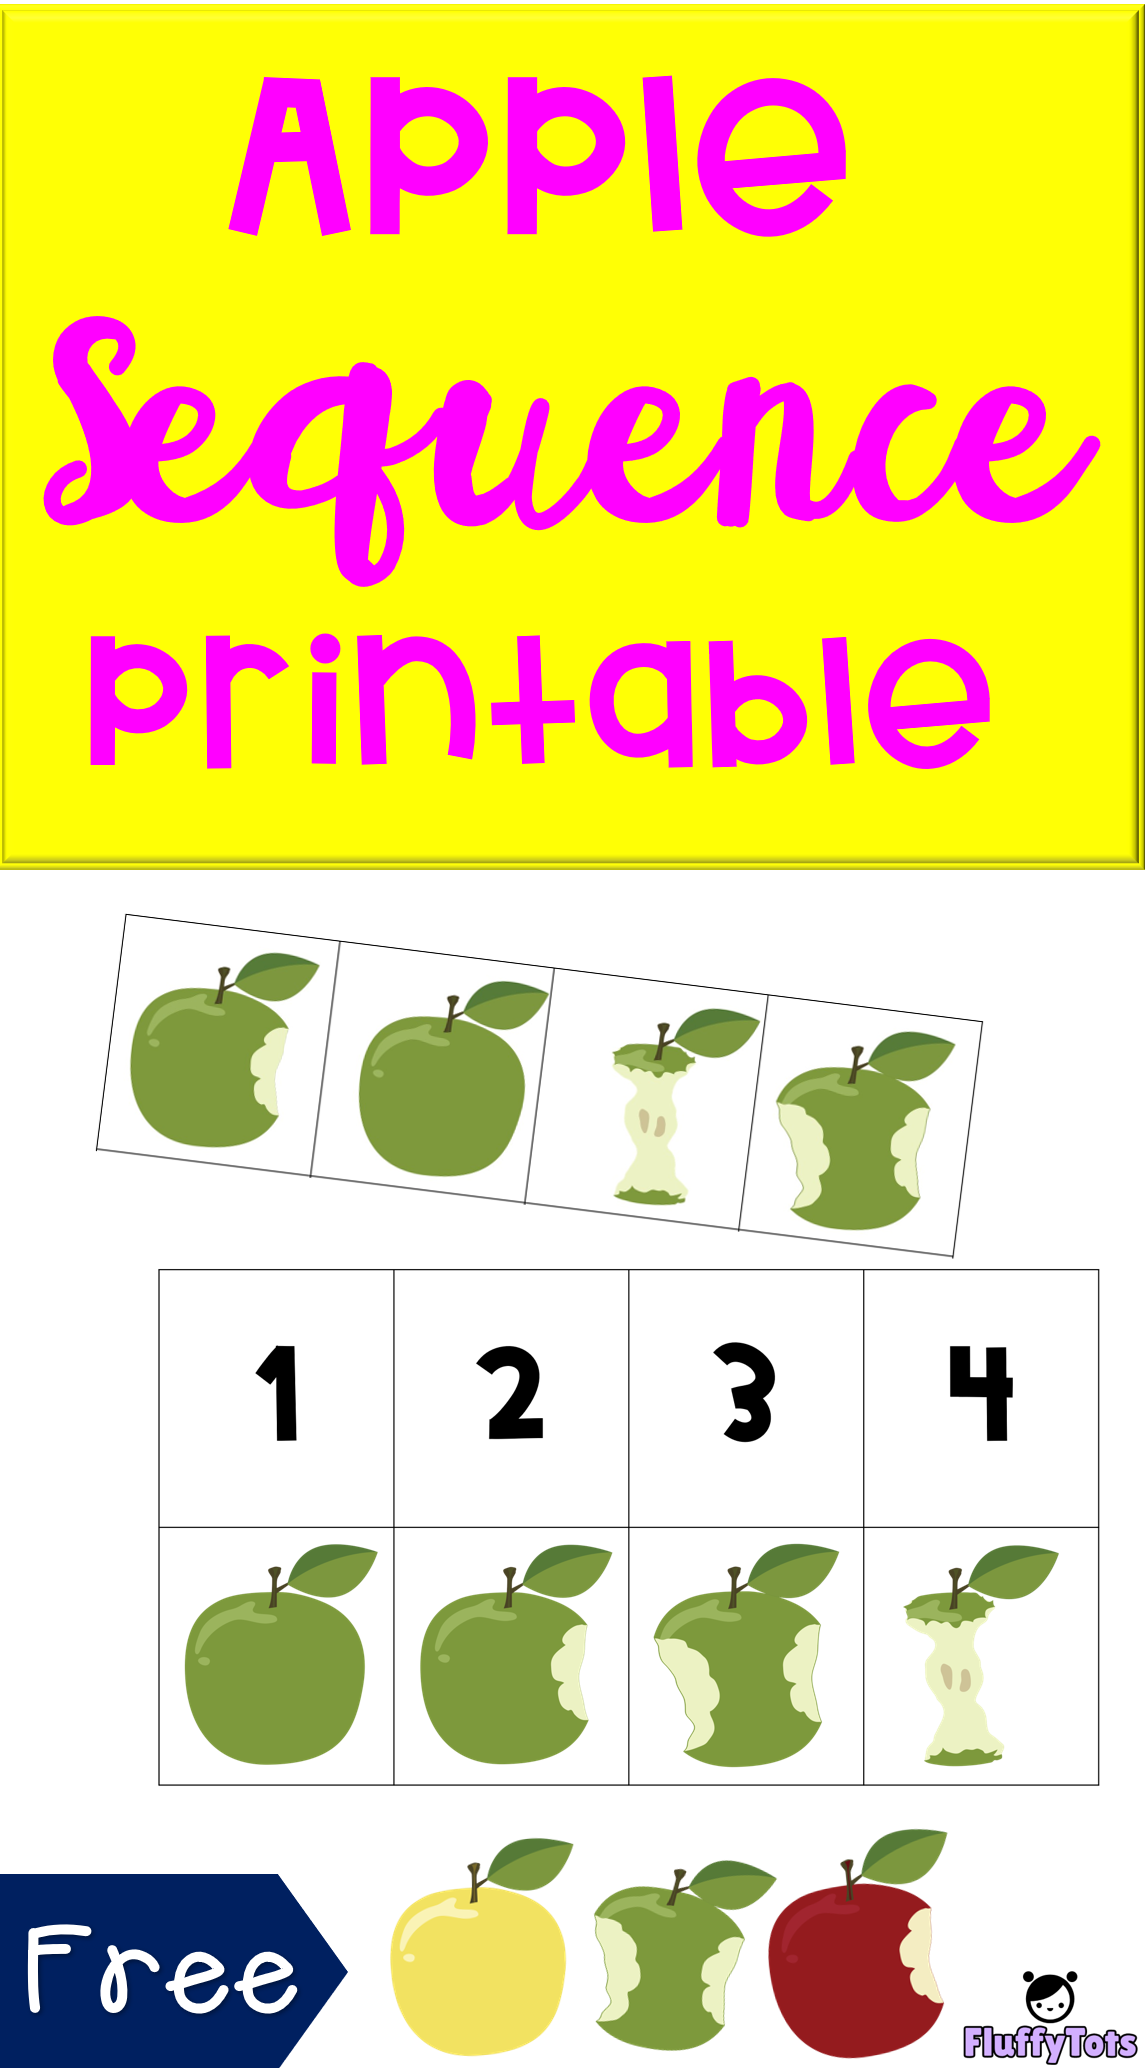 Eating Apple Sequencing Printable